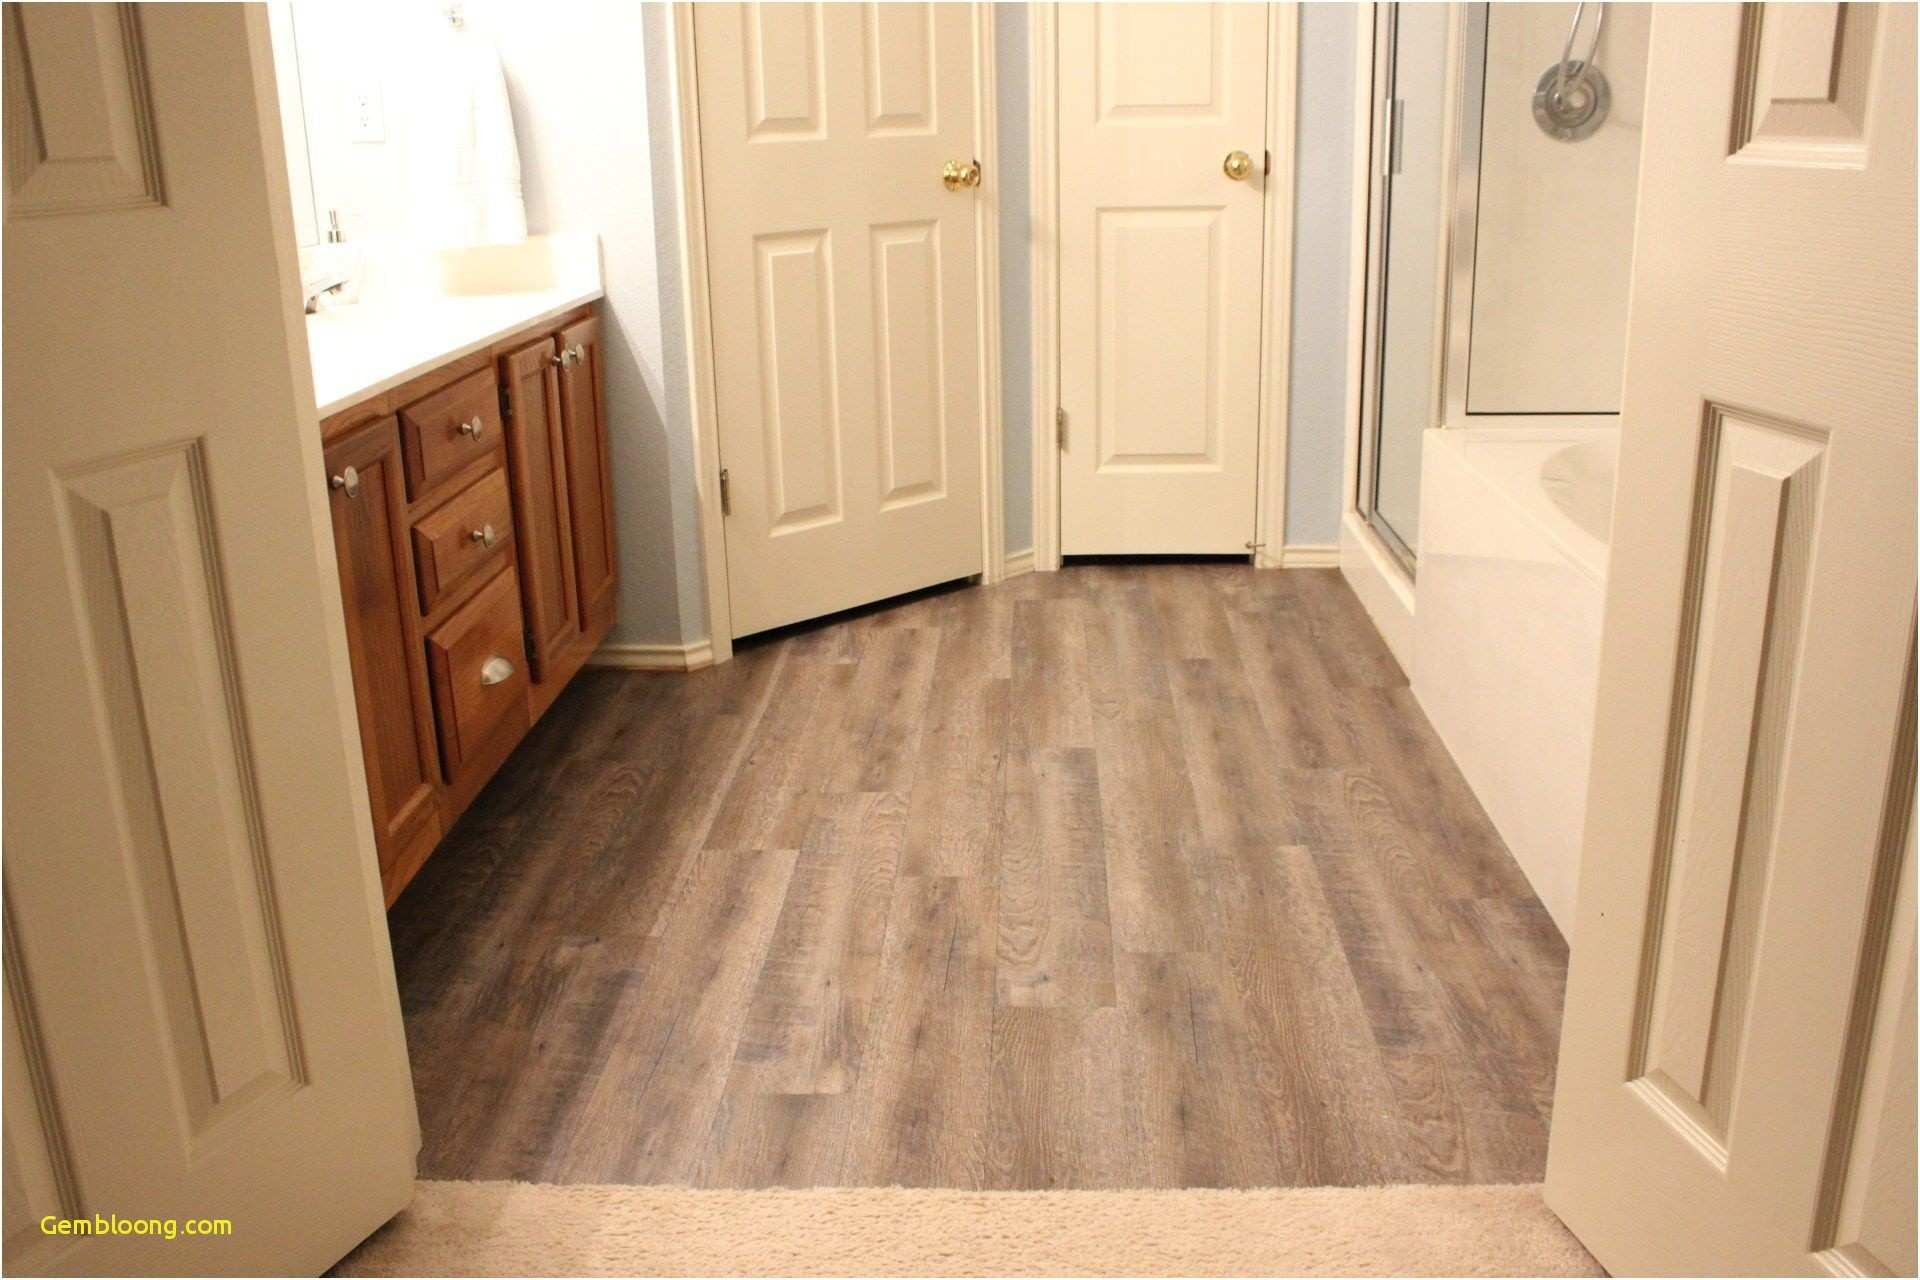 13 Unique Best Prices On Hardwood Flooring 2021 free download best prices on hardwood flooring of wood for floors facesinnature within wood for floors floor vinyl vinyl plan flooring elegant flooring sale near me stock